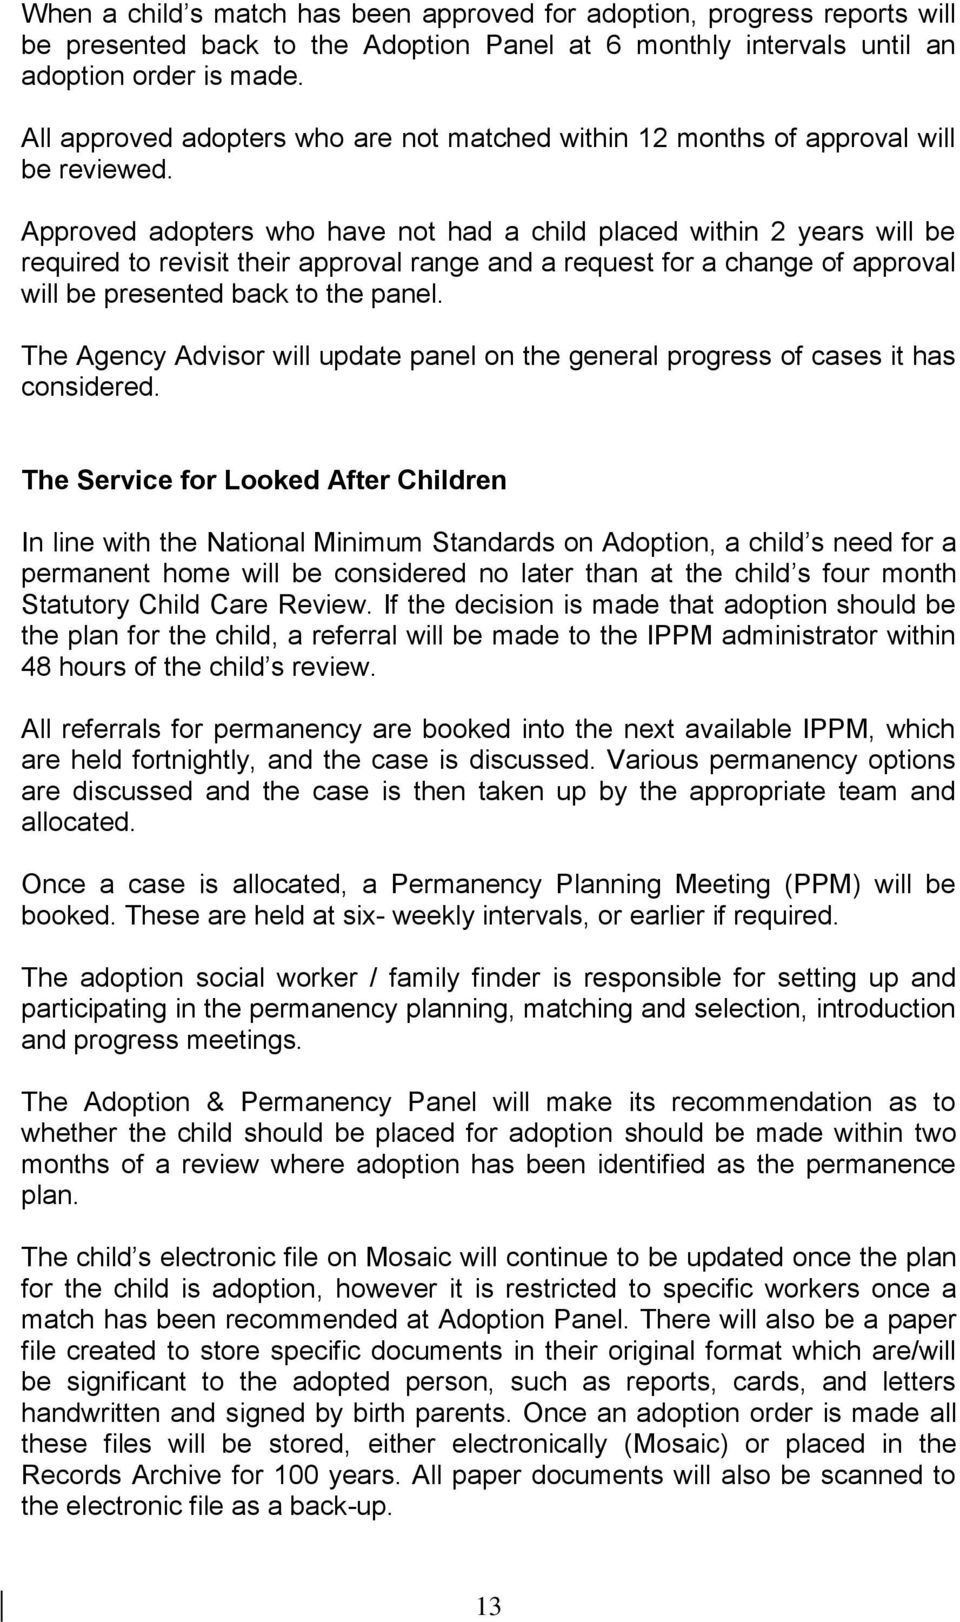 Approved adopters who have not had a child placed within 2 years will be required to revisit their approval range and a request for a change of approval will be presented back to the panel.